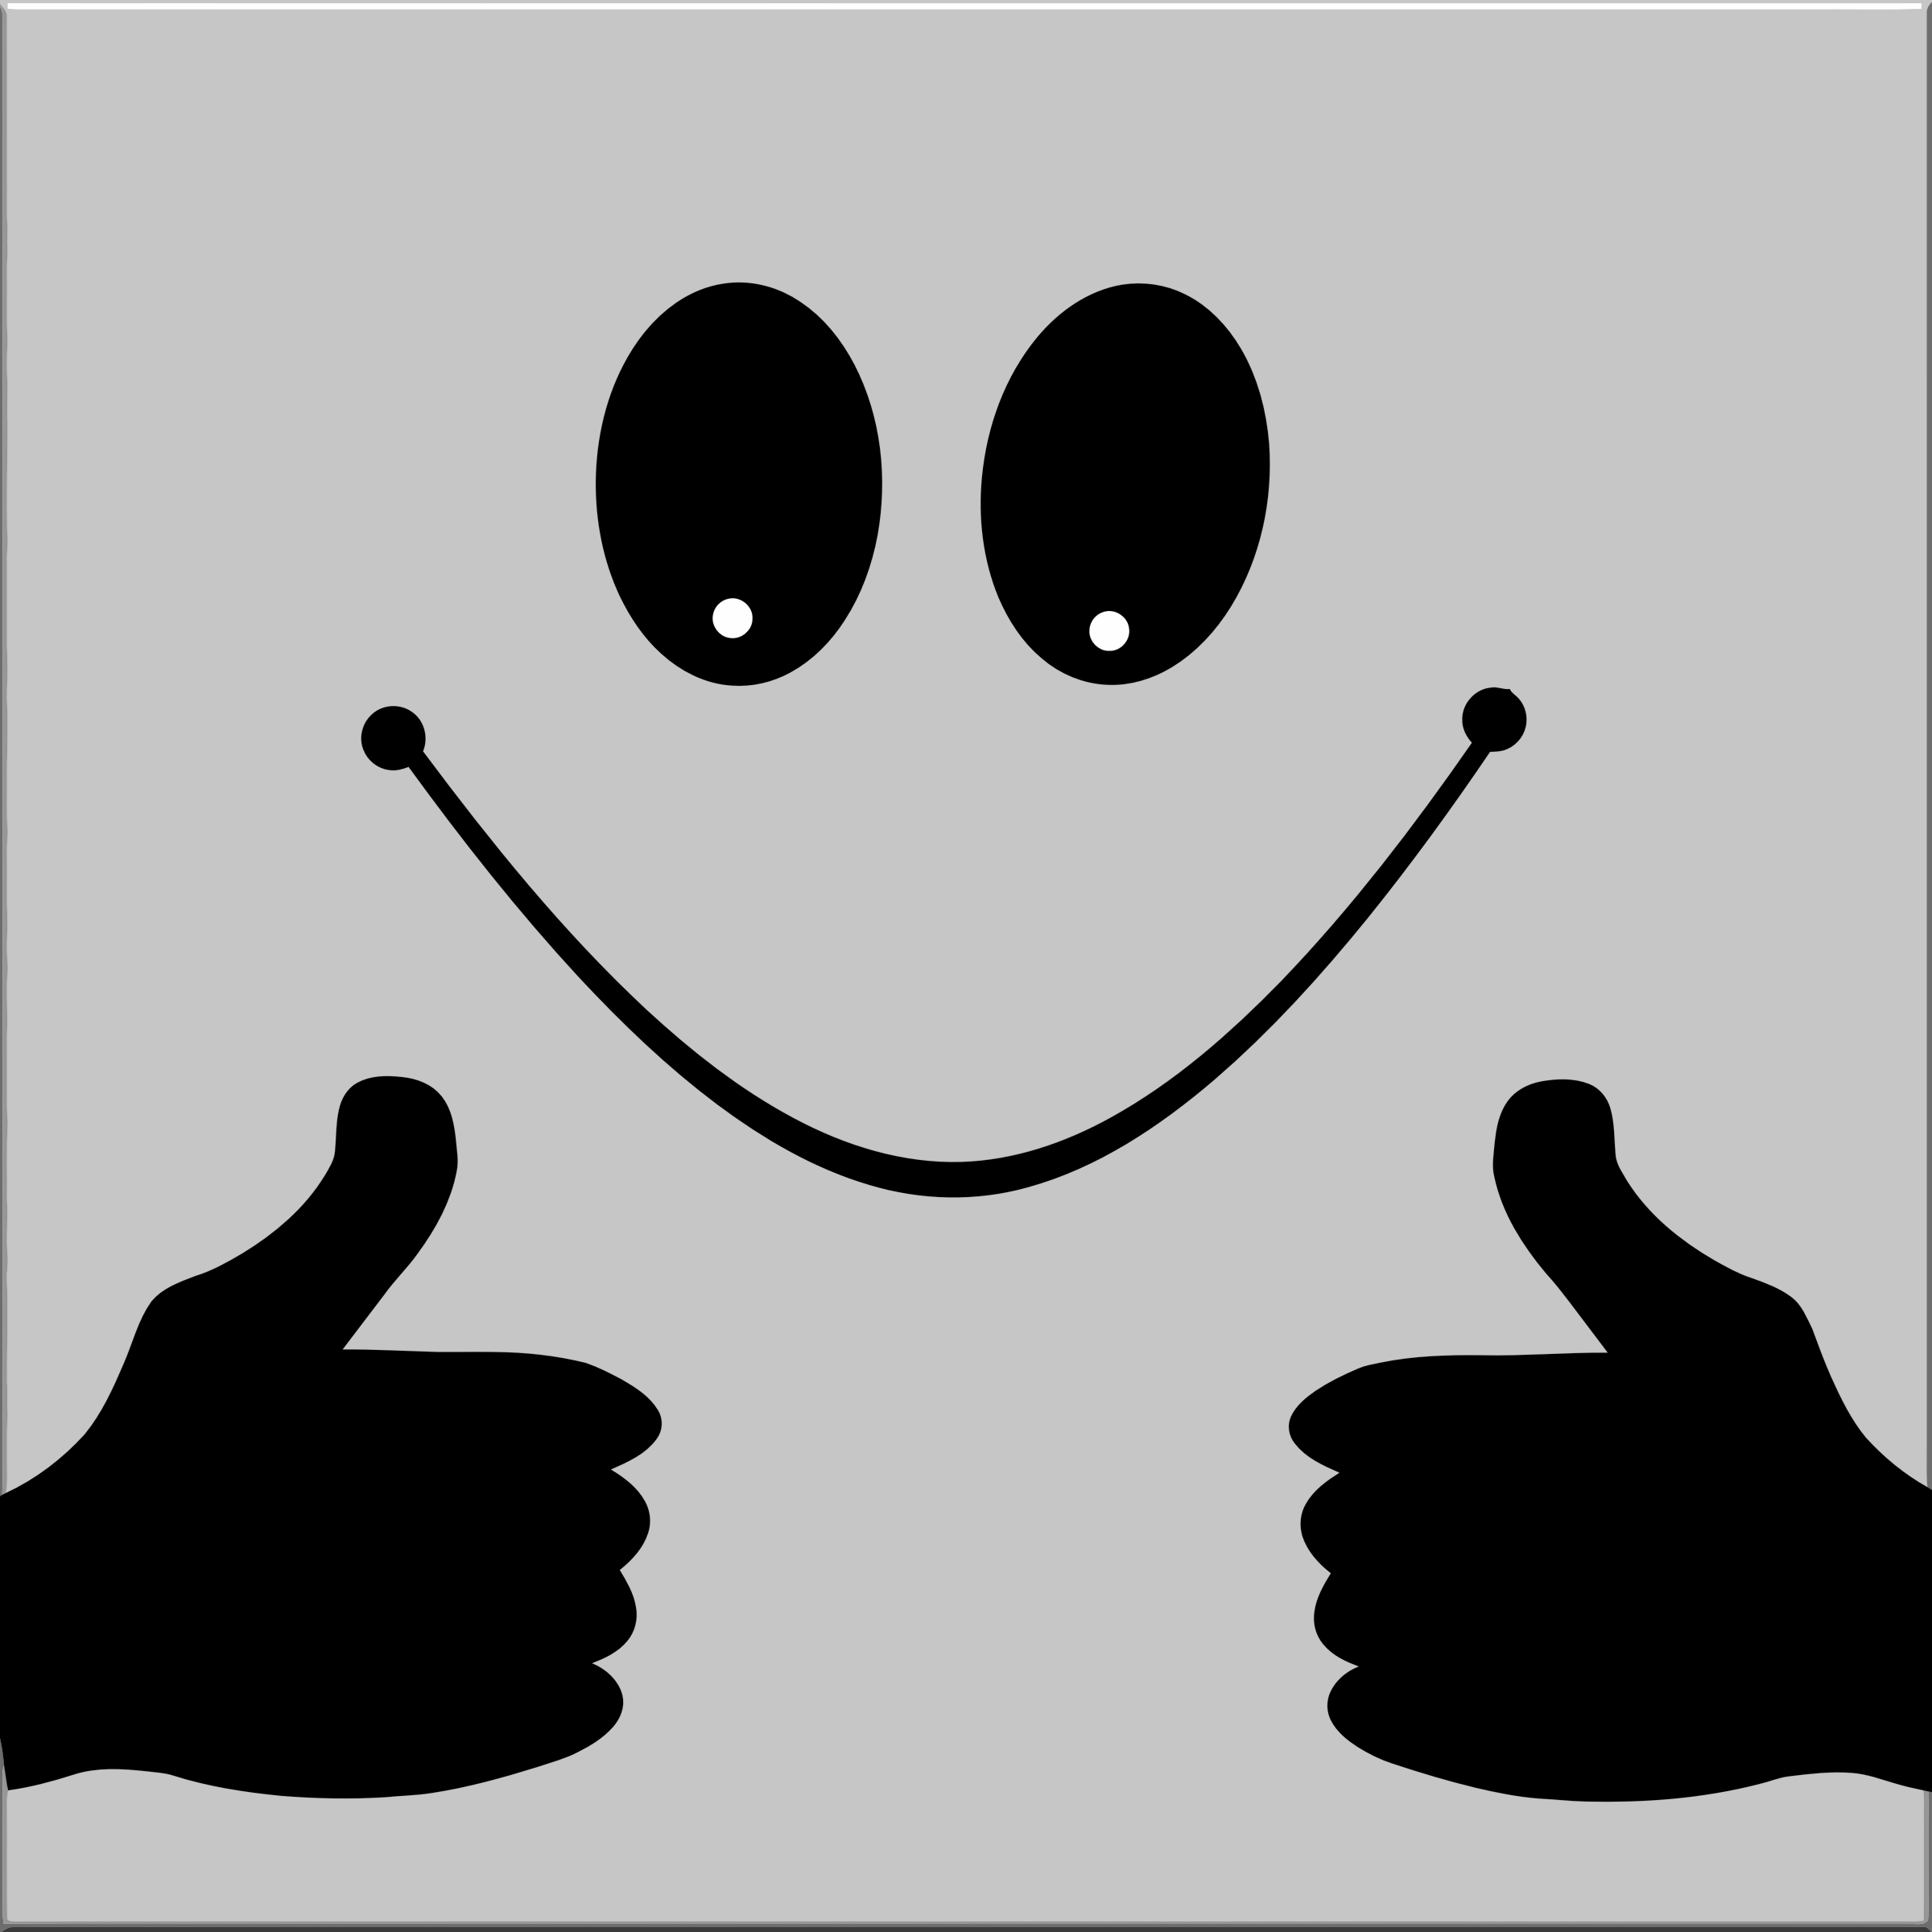 Smiley face thumbs up clipart thumbs up smiley face 3